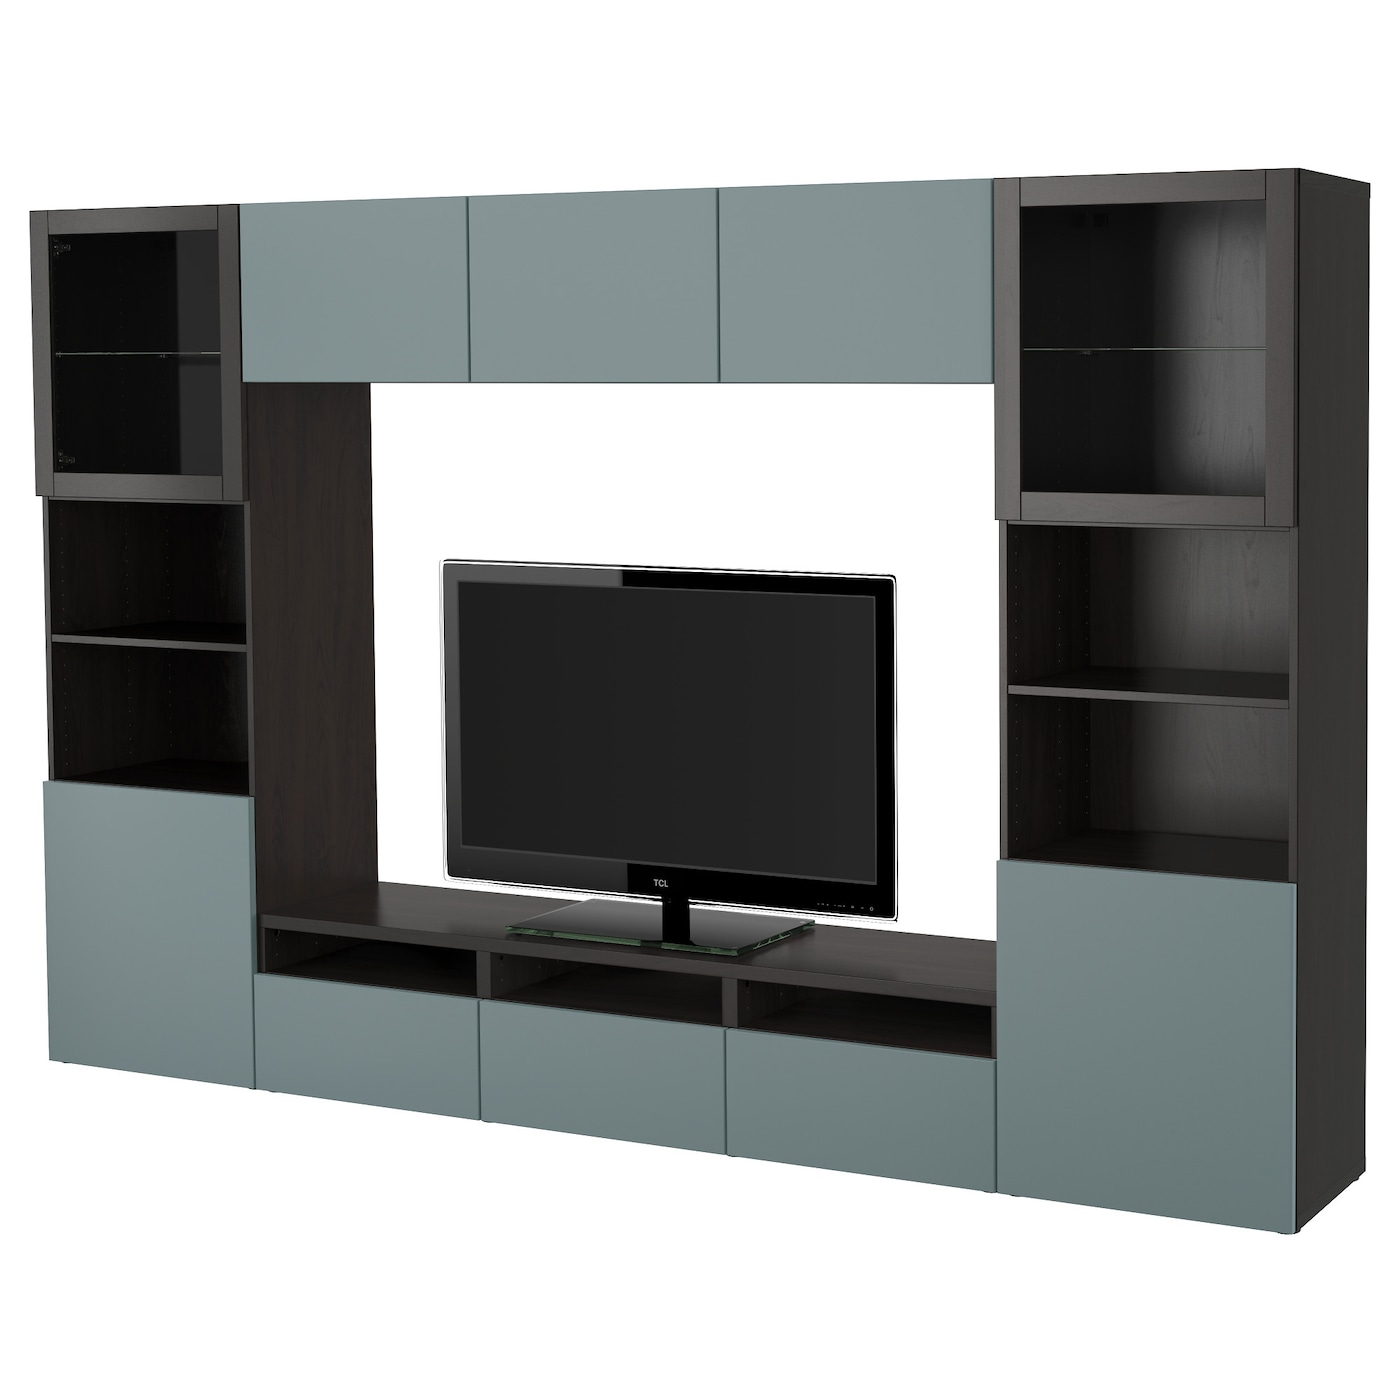 Led tv price in bangalore dating 2